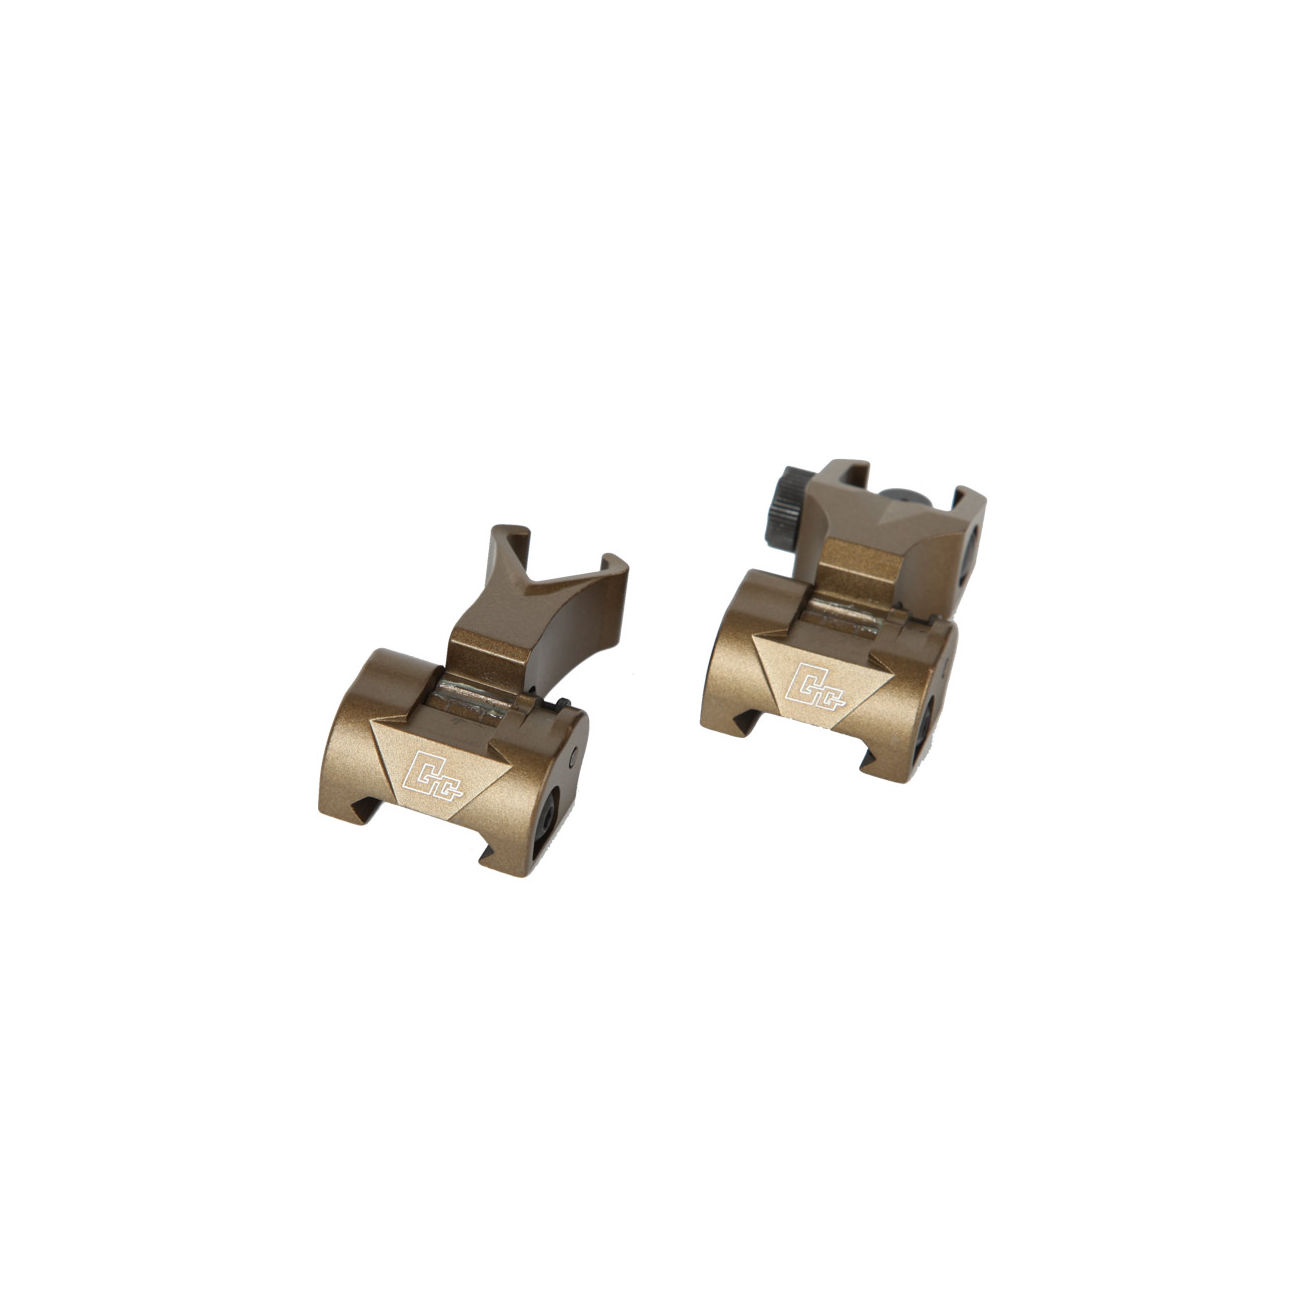 G&G Flip-Up Battle Sight Set Front / Rear für 21mm Schienen Desert Tan 1